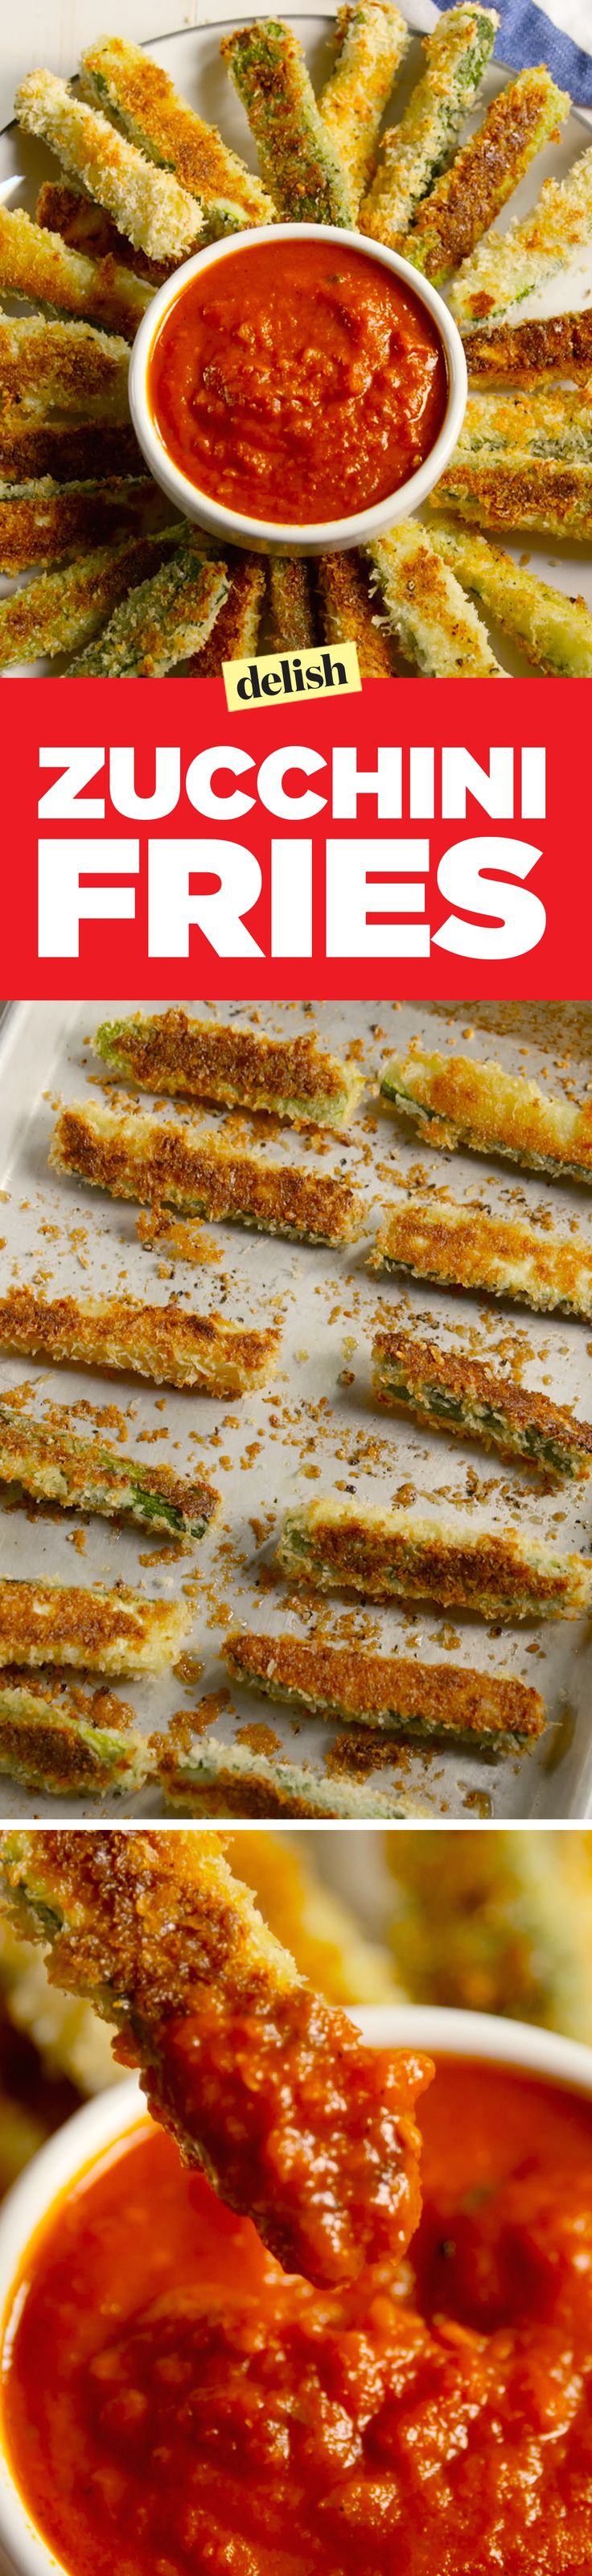 Zucchini fries are low in carbs, but HIGH in flavor. Get the recipe on Delish.com.